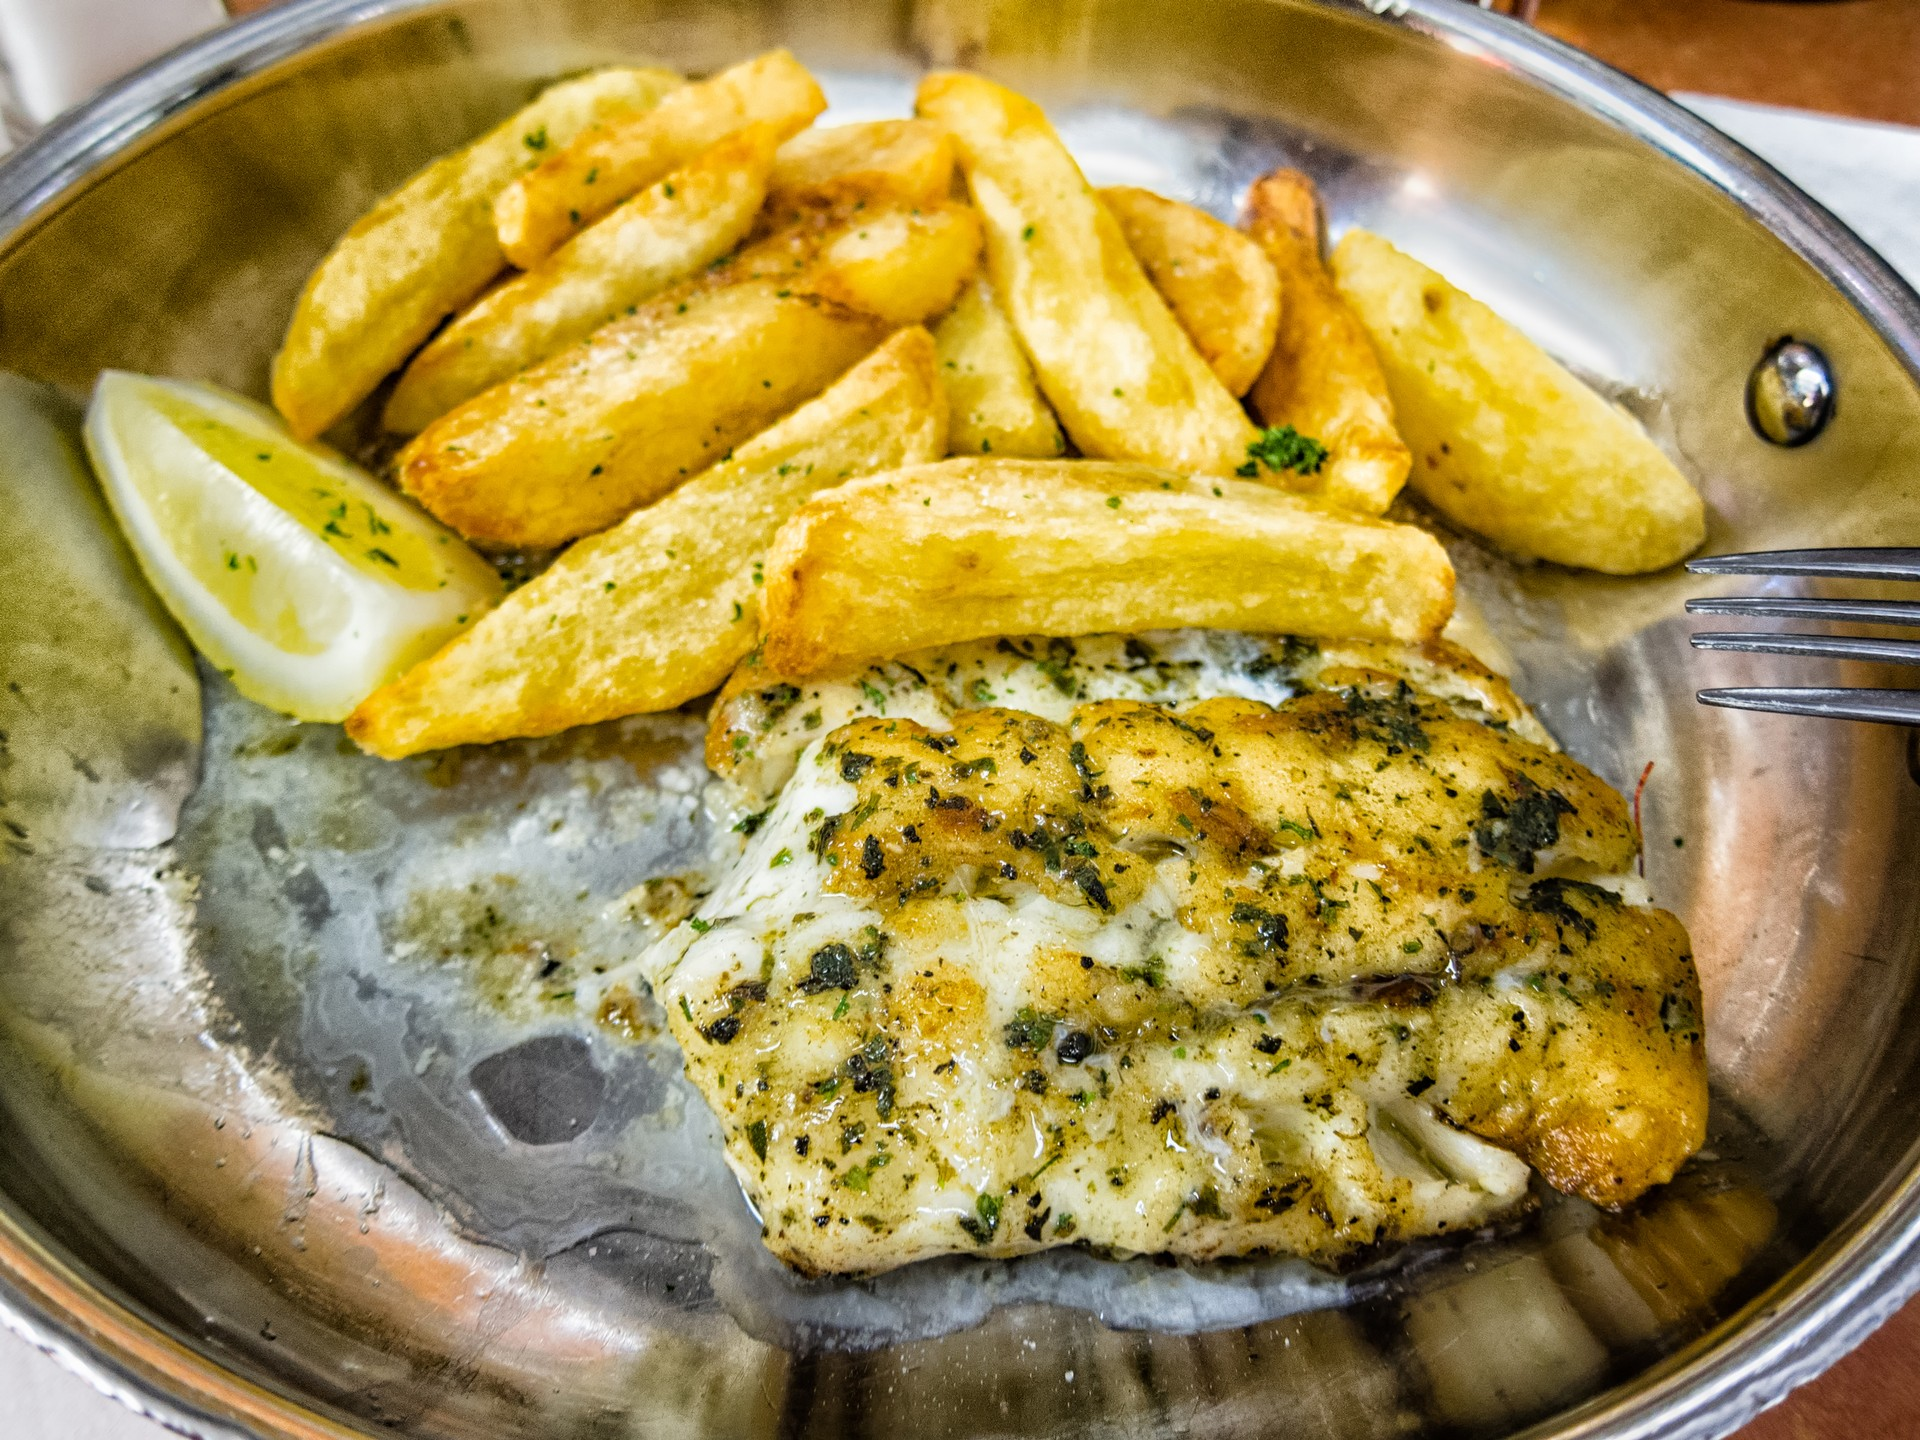 Delicious South African fish and chips